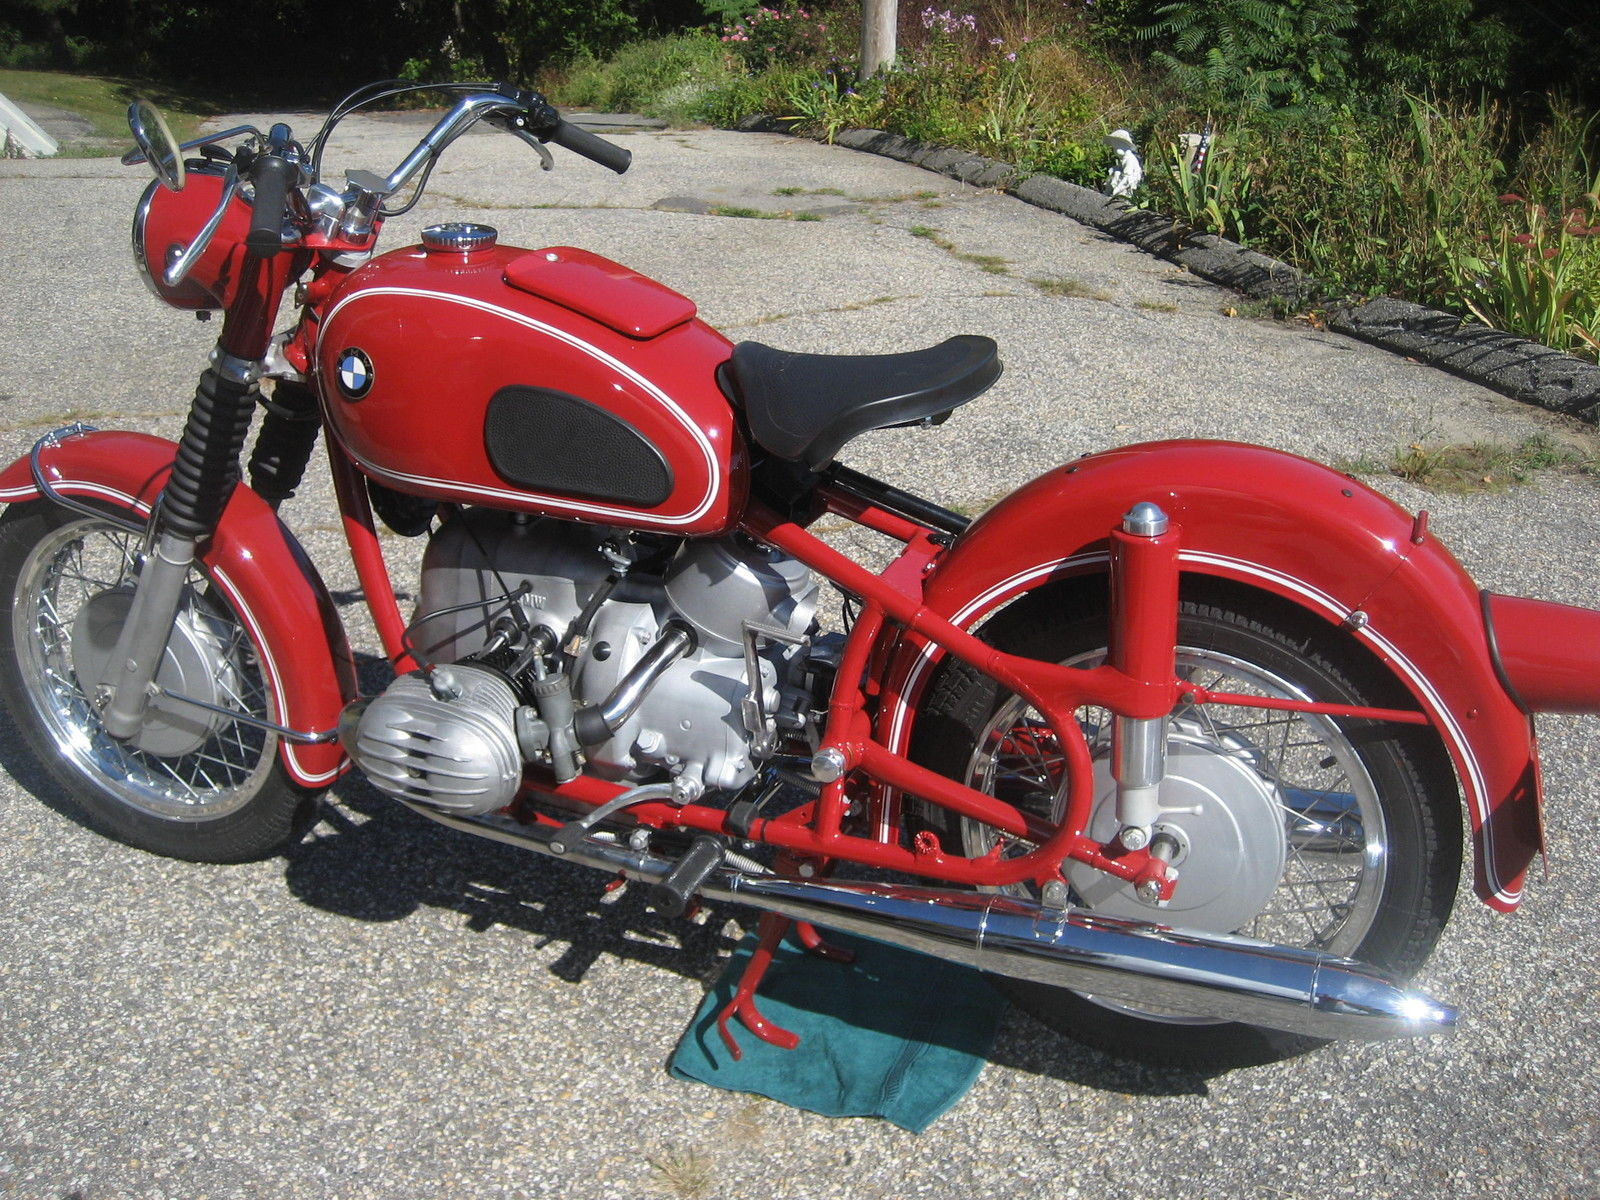 BMW R60 - 1969 - Left Side View, Frame, Seat, Rear Wheel, Suspension, Motor and Handlebars.